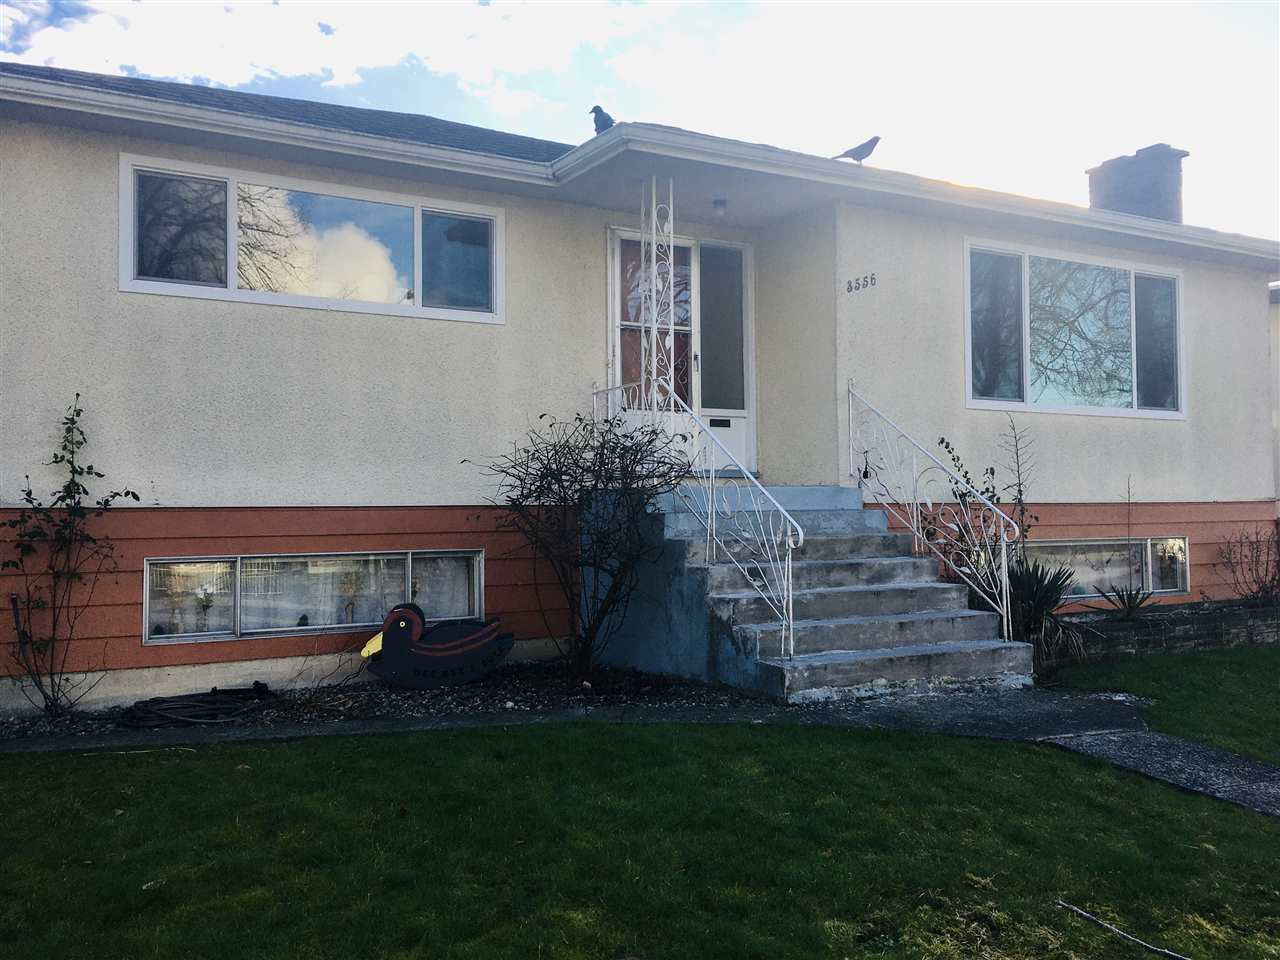 3556 E 27TH AVENUE - Renfrew Heights House/Single Family for sale, 5 Bedrooms (R2539478) - #2